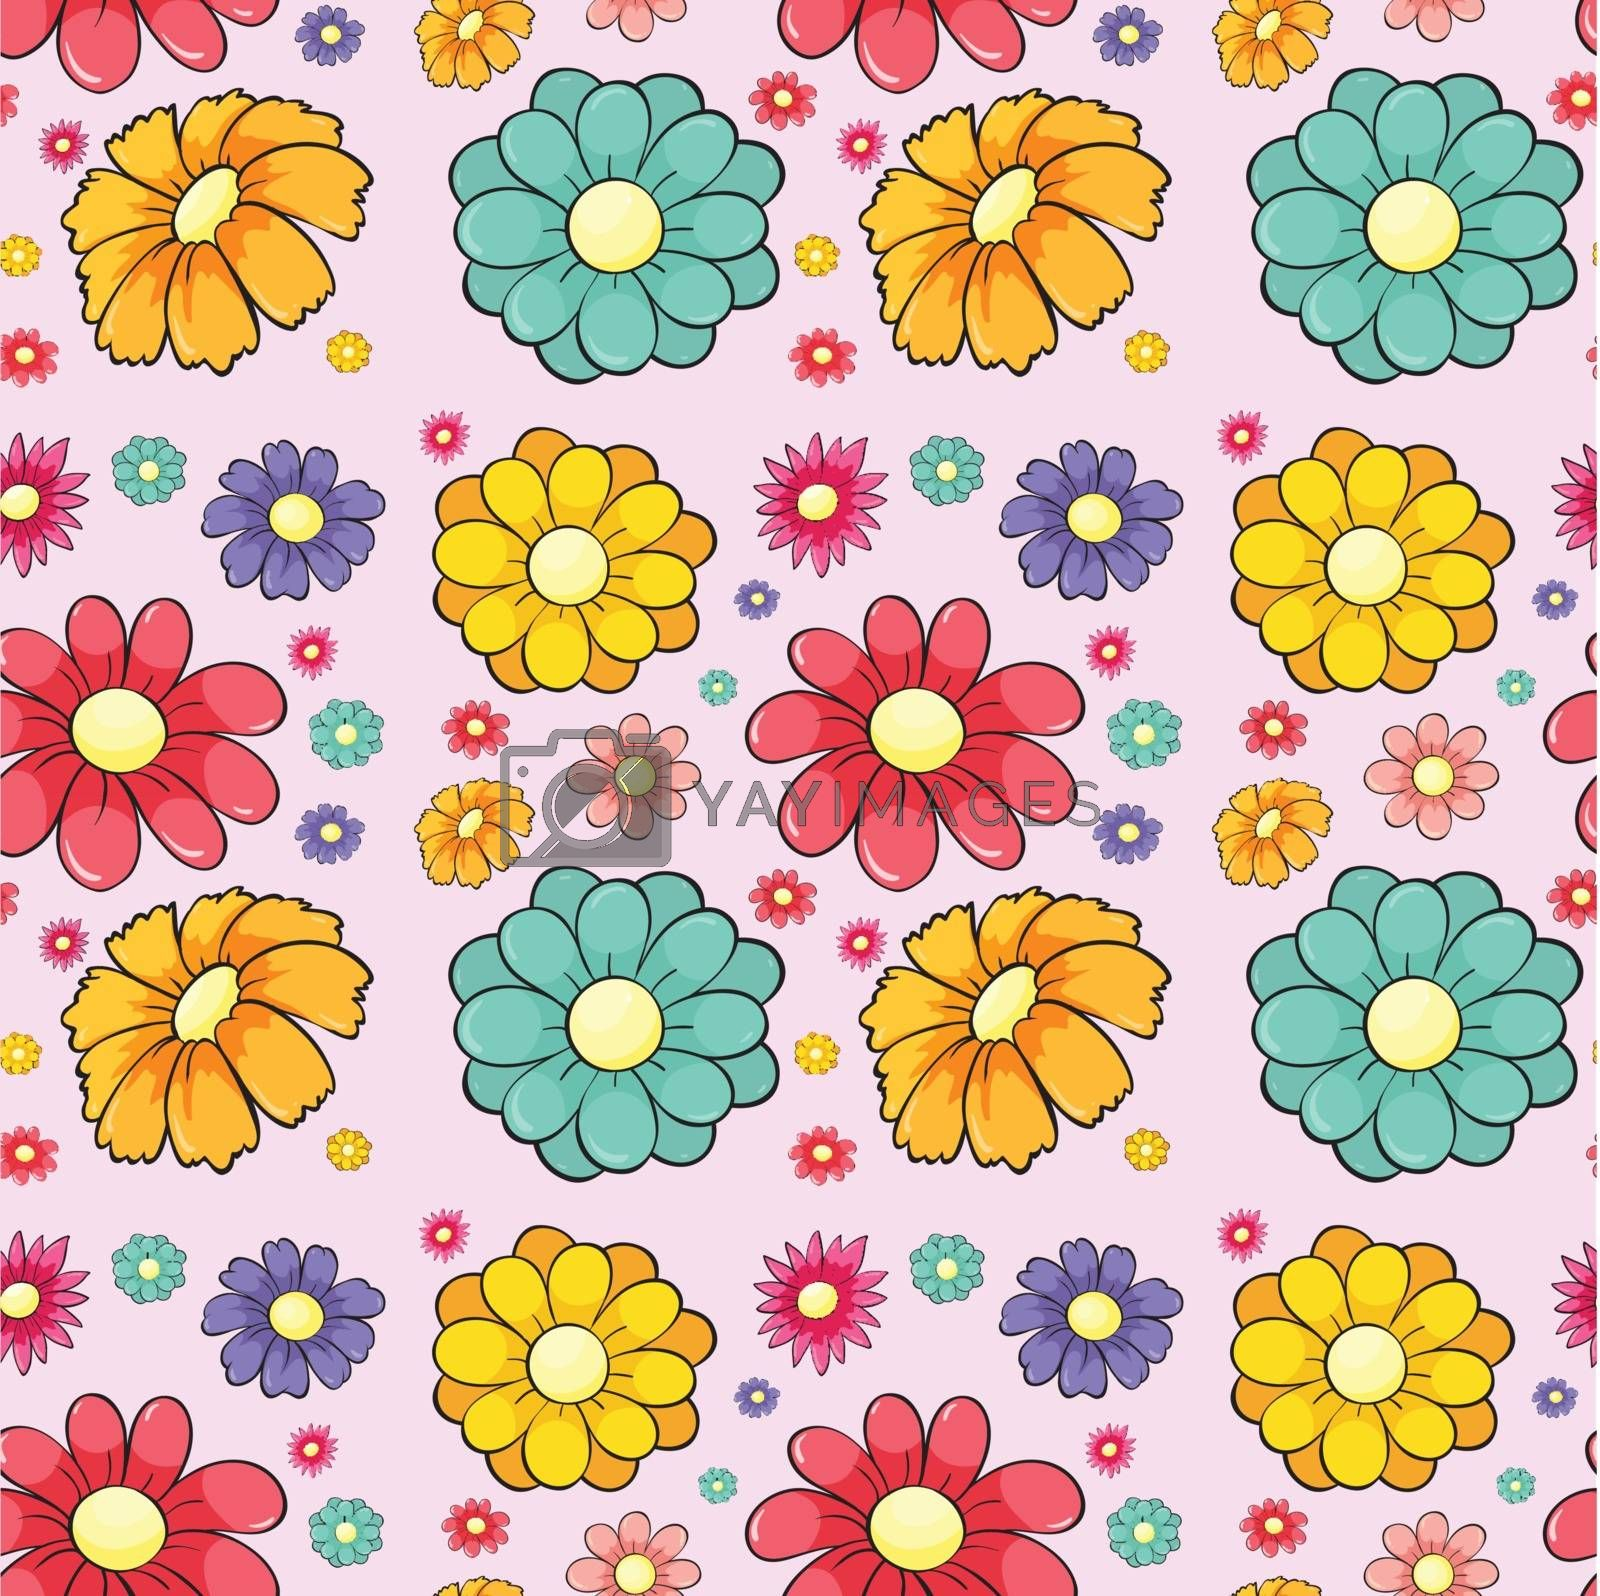 Illustration of a flower seamless